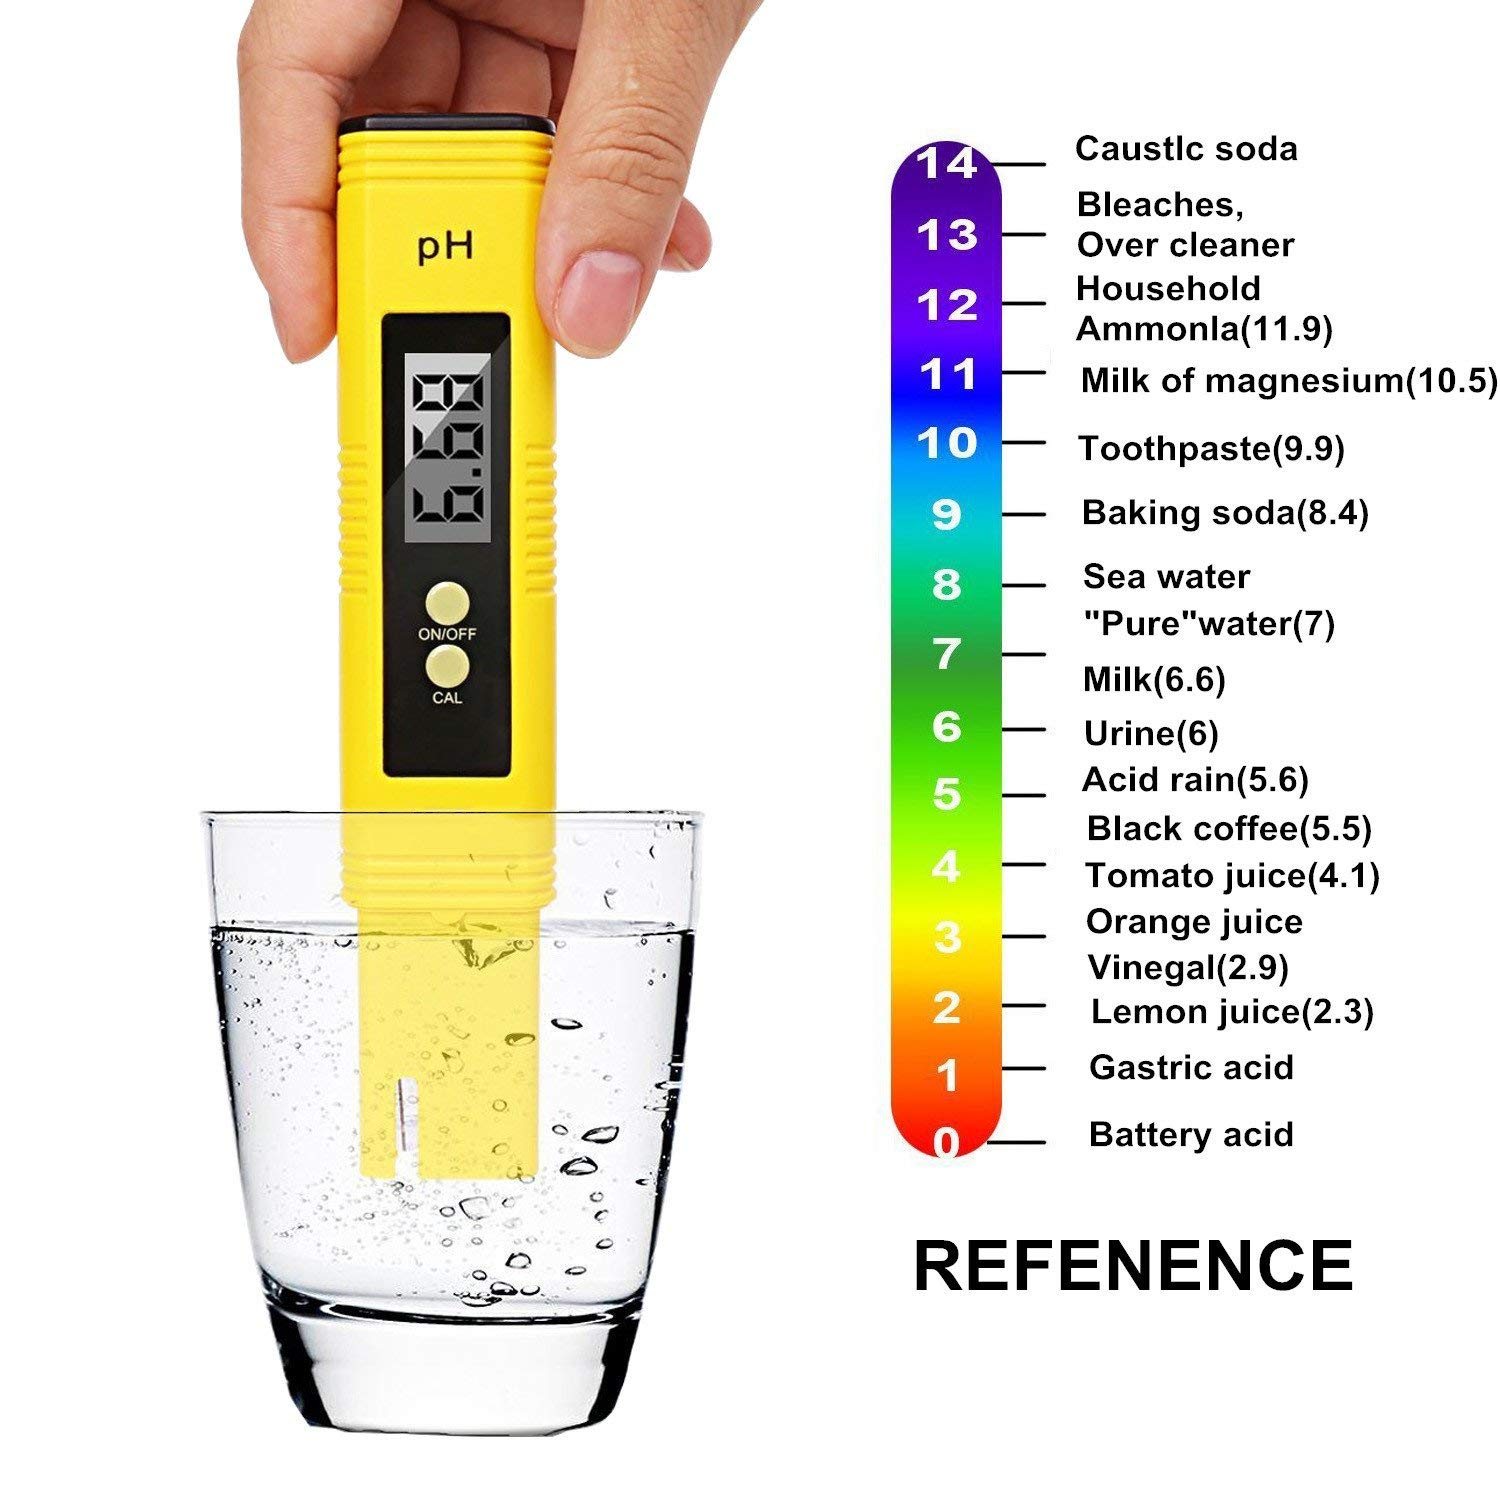 Stolife PH Meter, Digital PH Tester, Mini Water Quality Tester for Household Drinking Water, Hydroponics, Aquariums, Swimming Pools